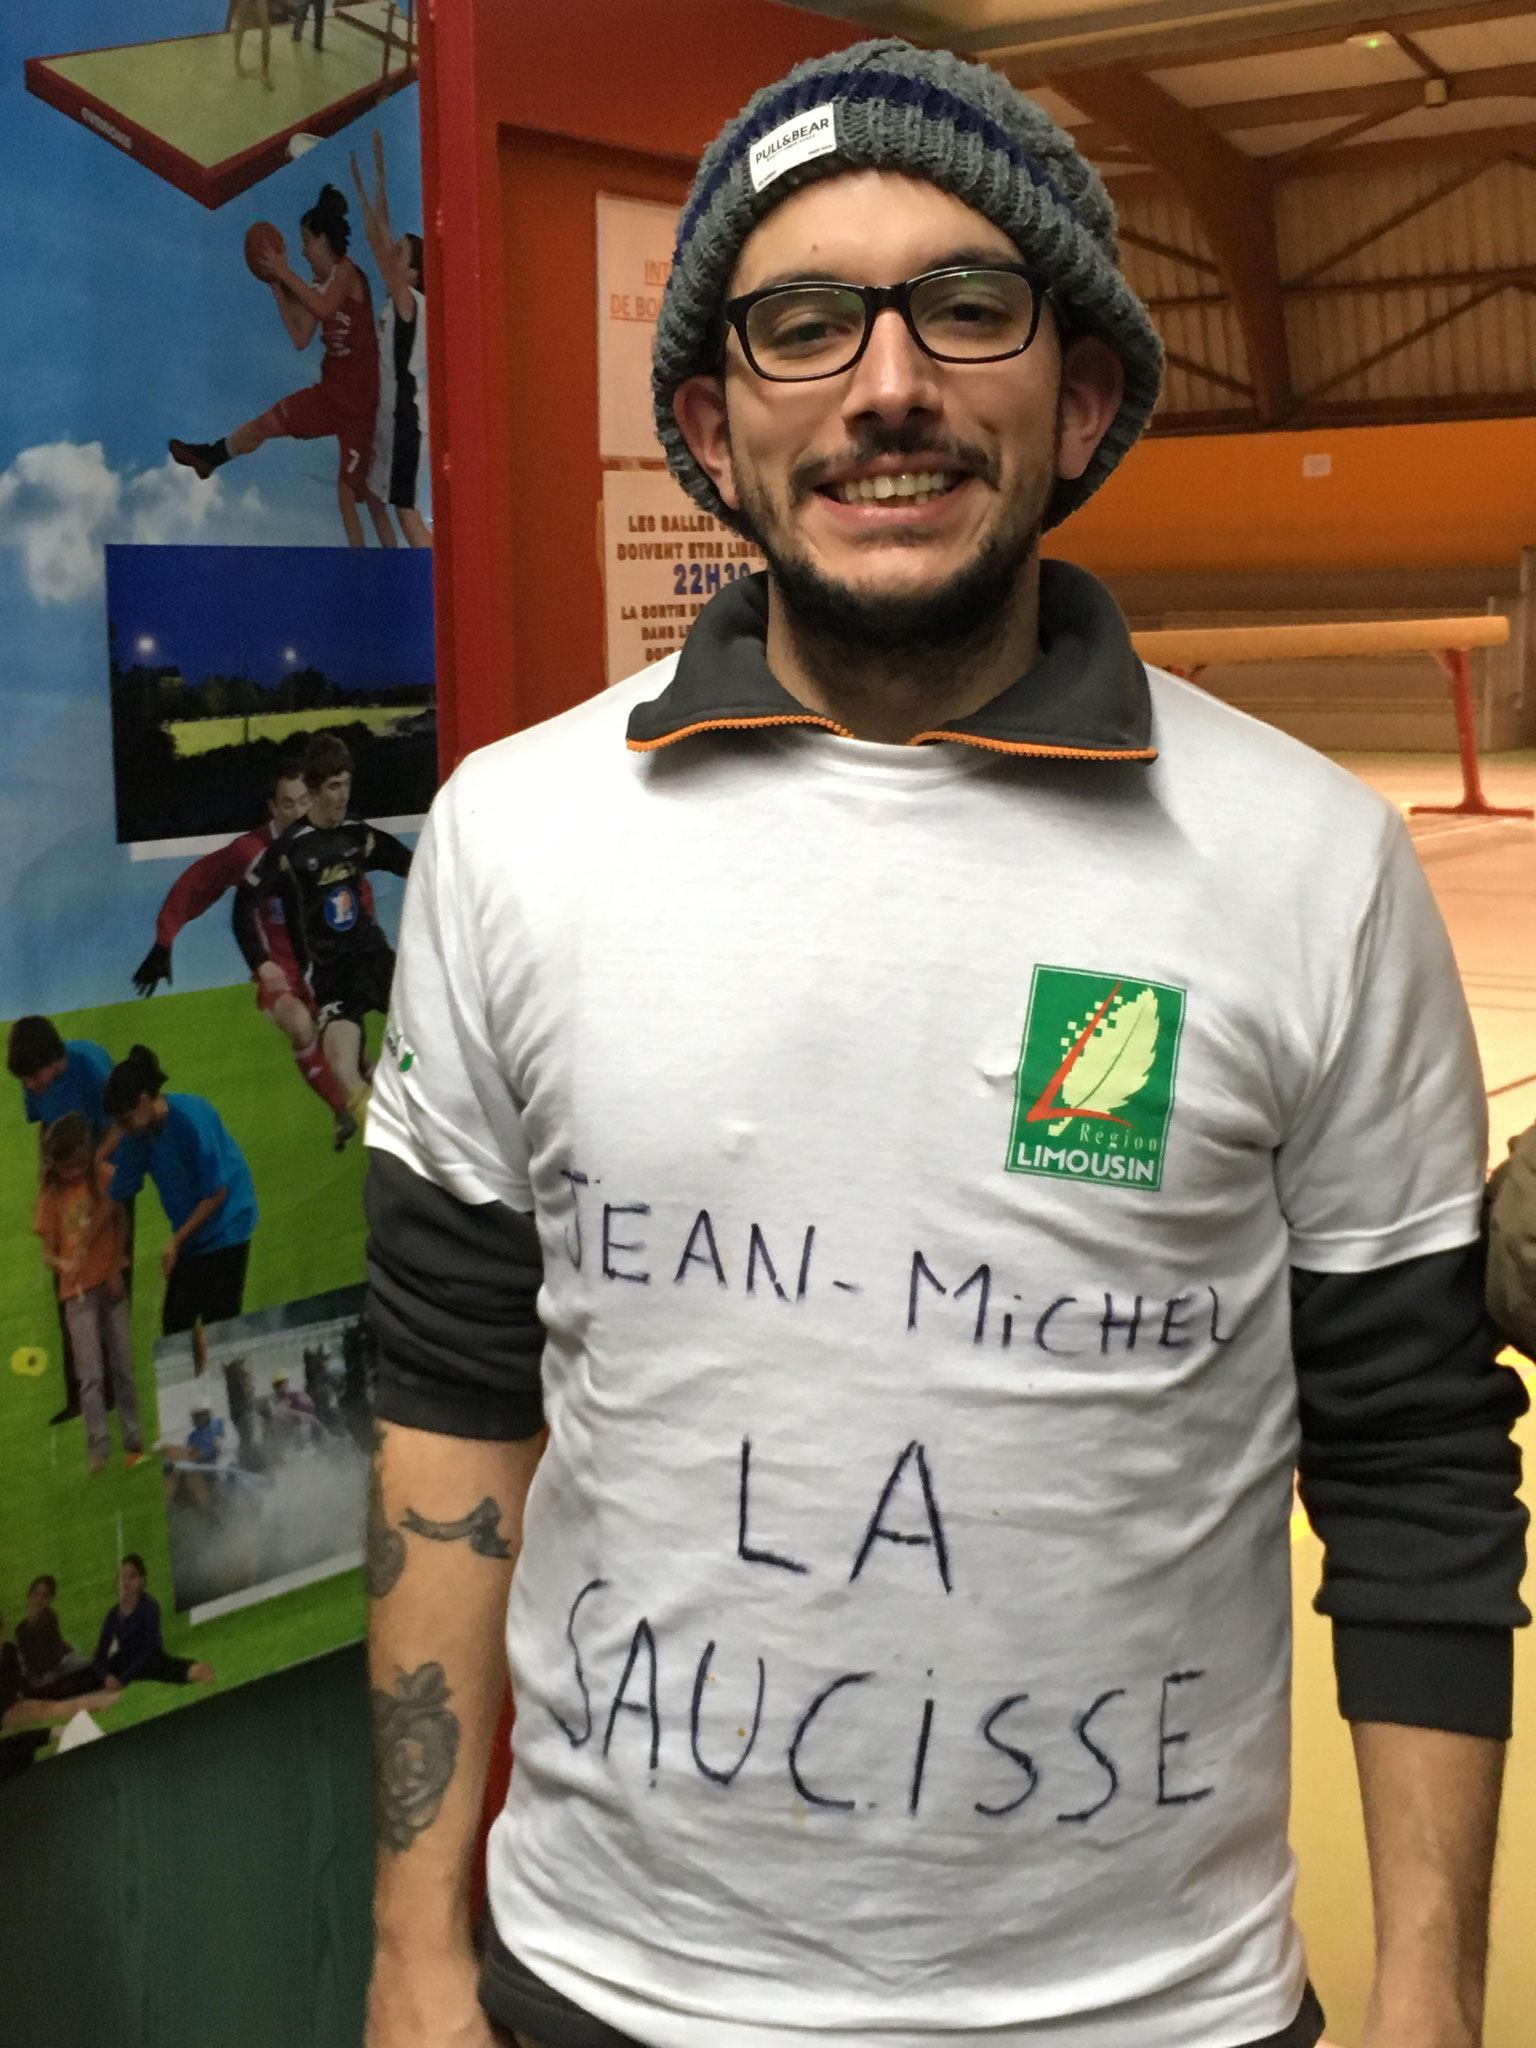 Jean Michel la Saucisse: on se passera de commentaire sur le look!